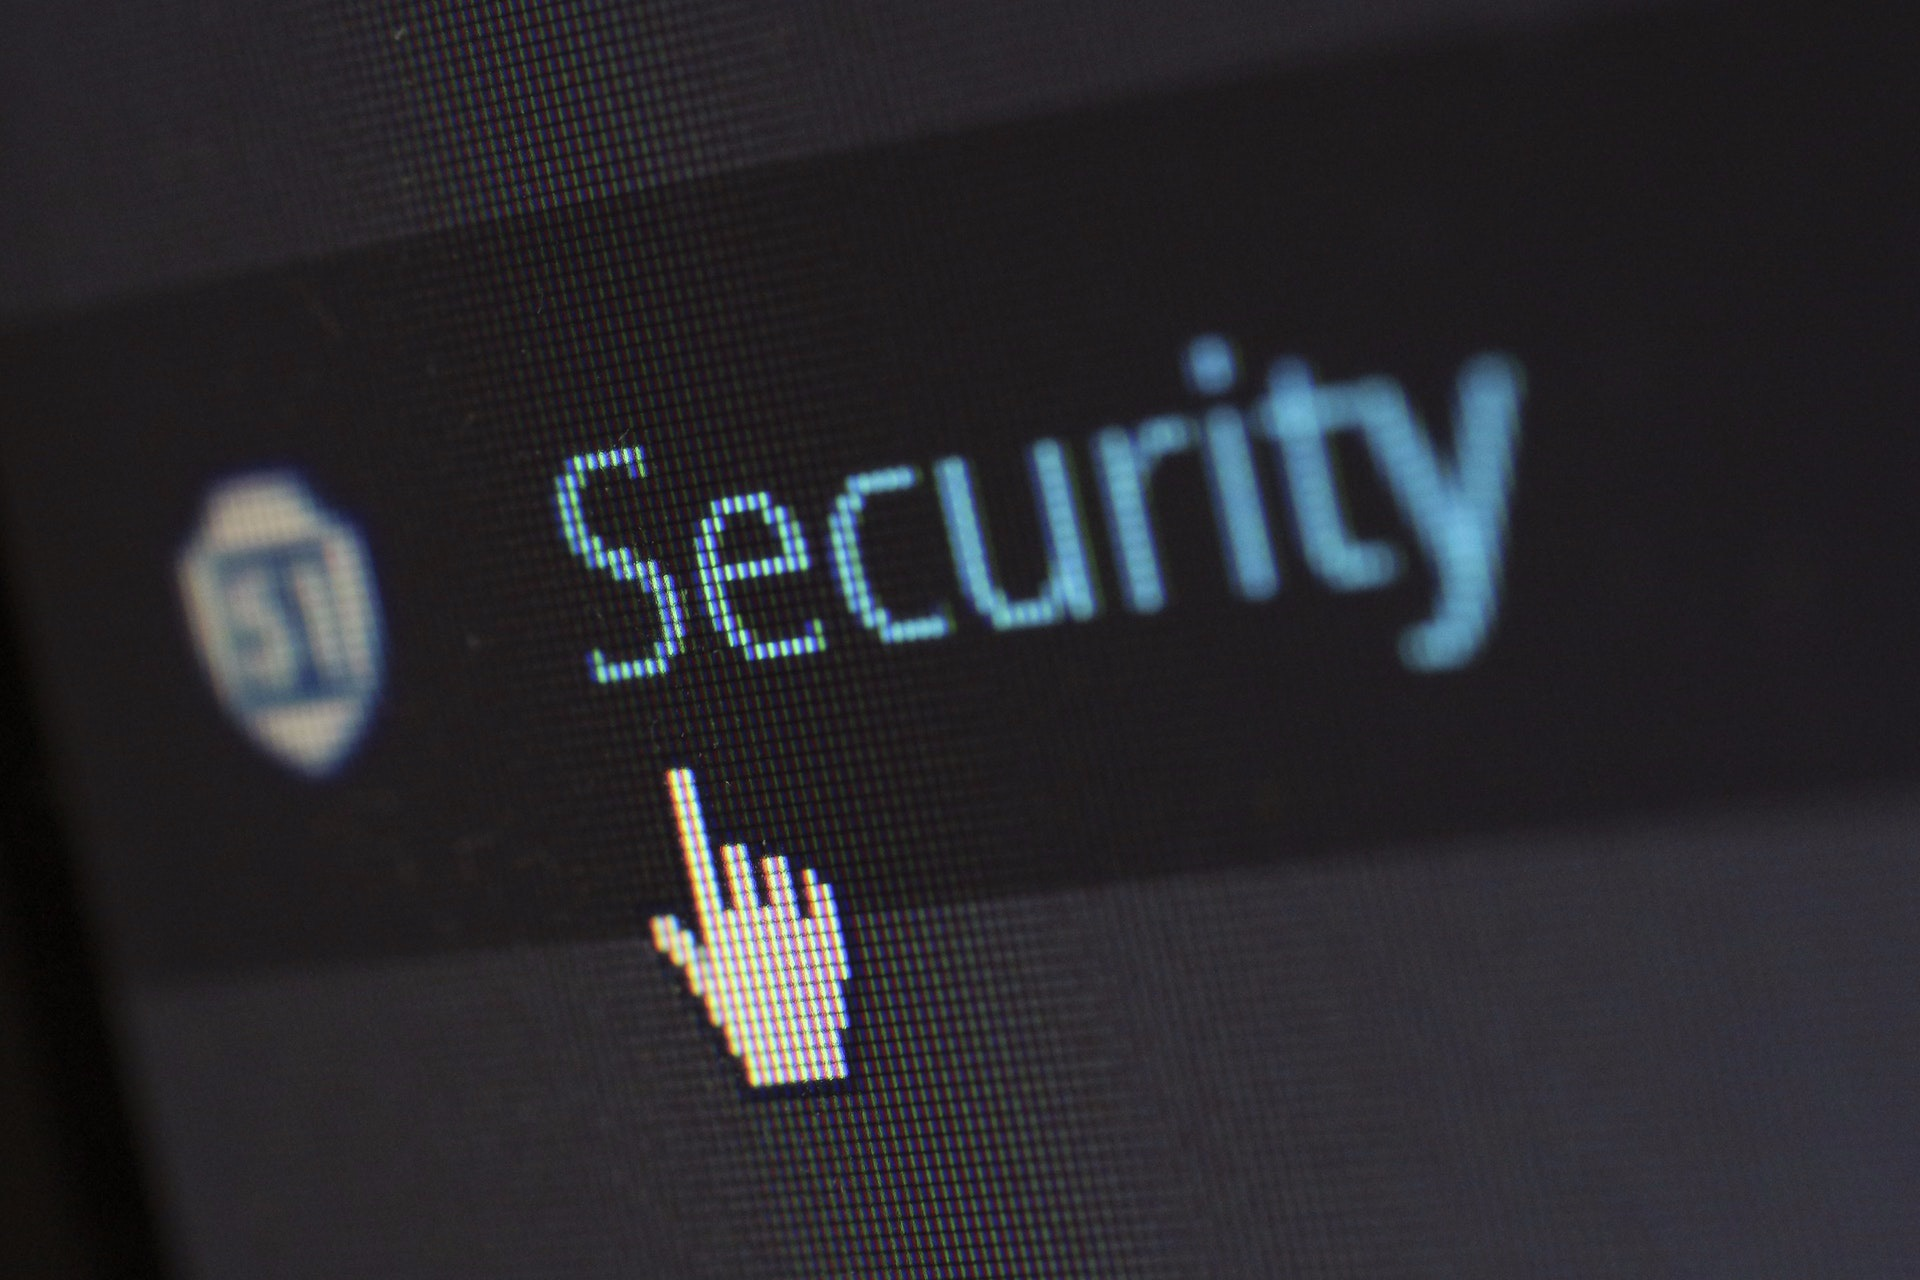 /9-security-tips-to-protect-your-website-from-hackers-and-data-breaches-gp4333pa feature image